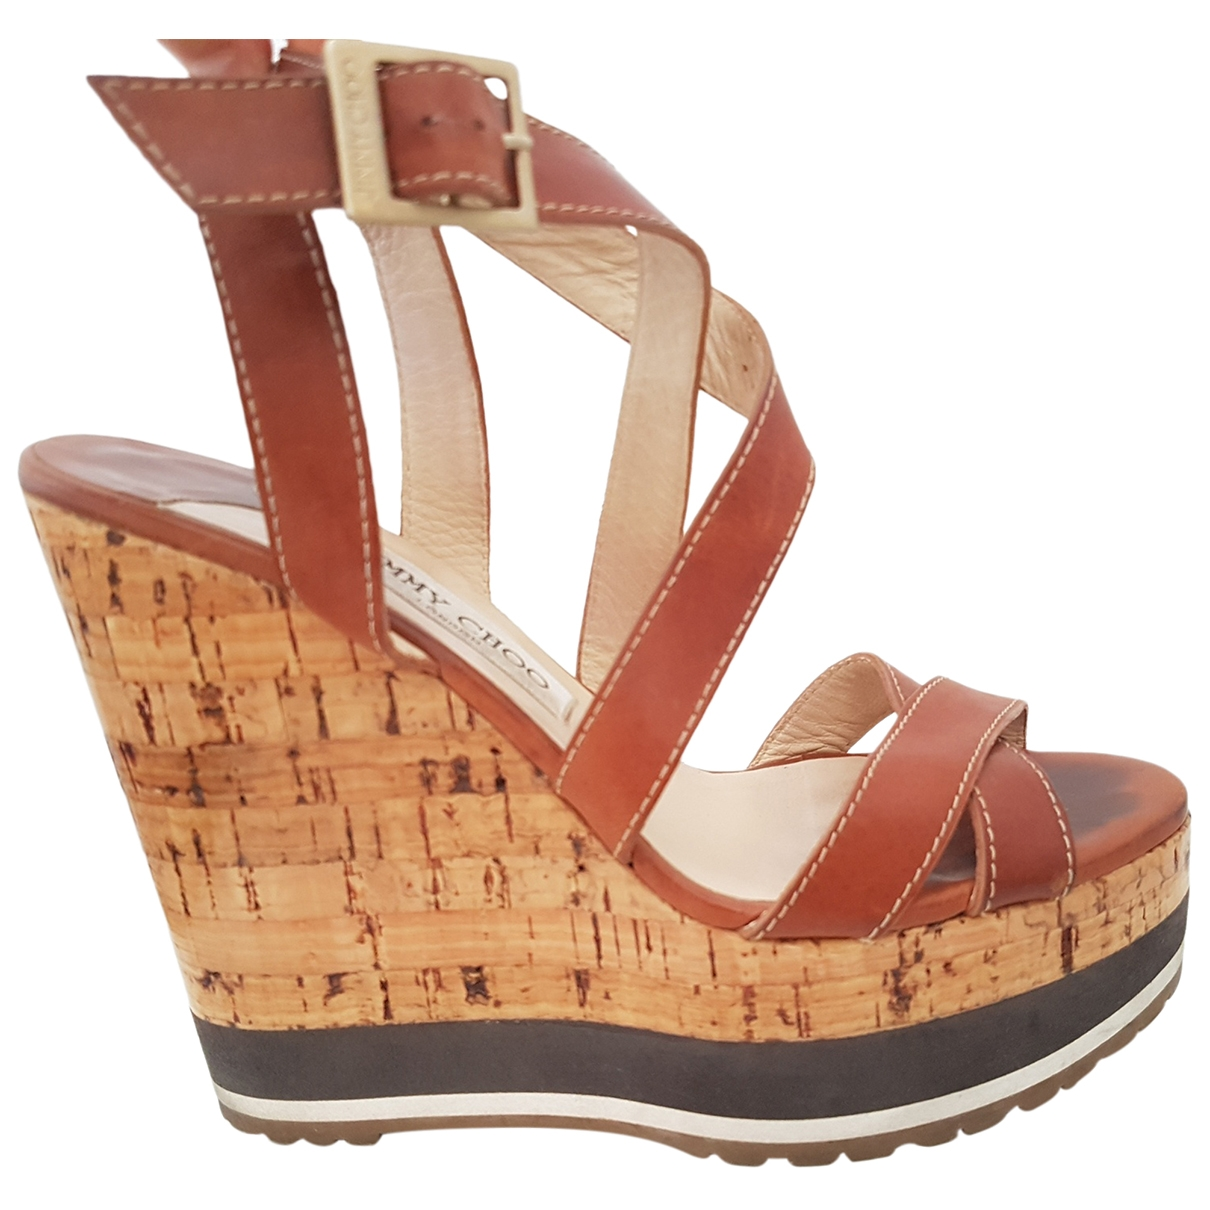 Jimmy Choo \N Brown Leather Sandals for Women 37.5 EU